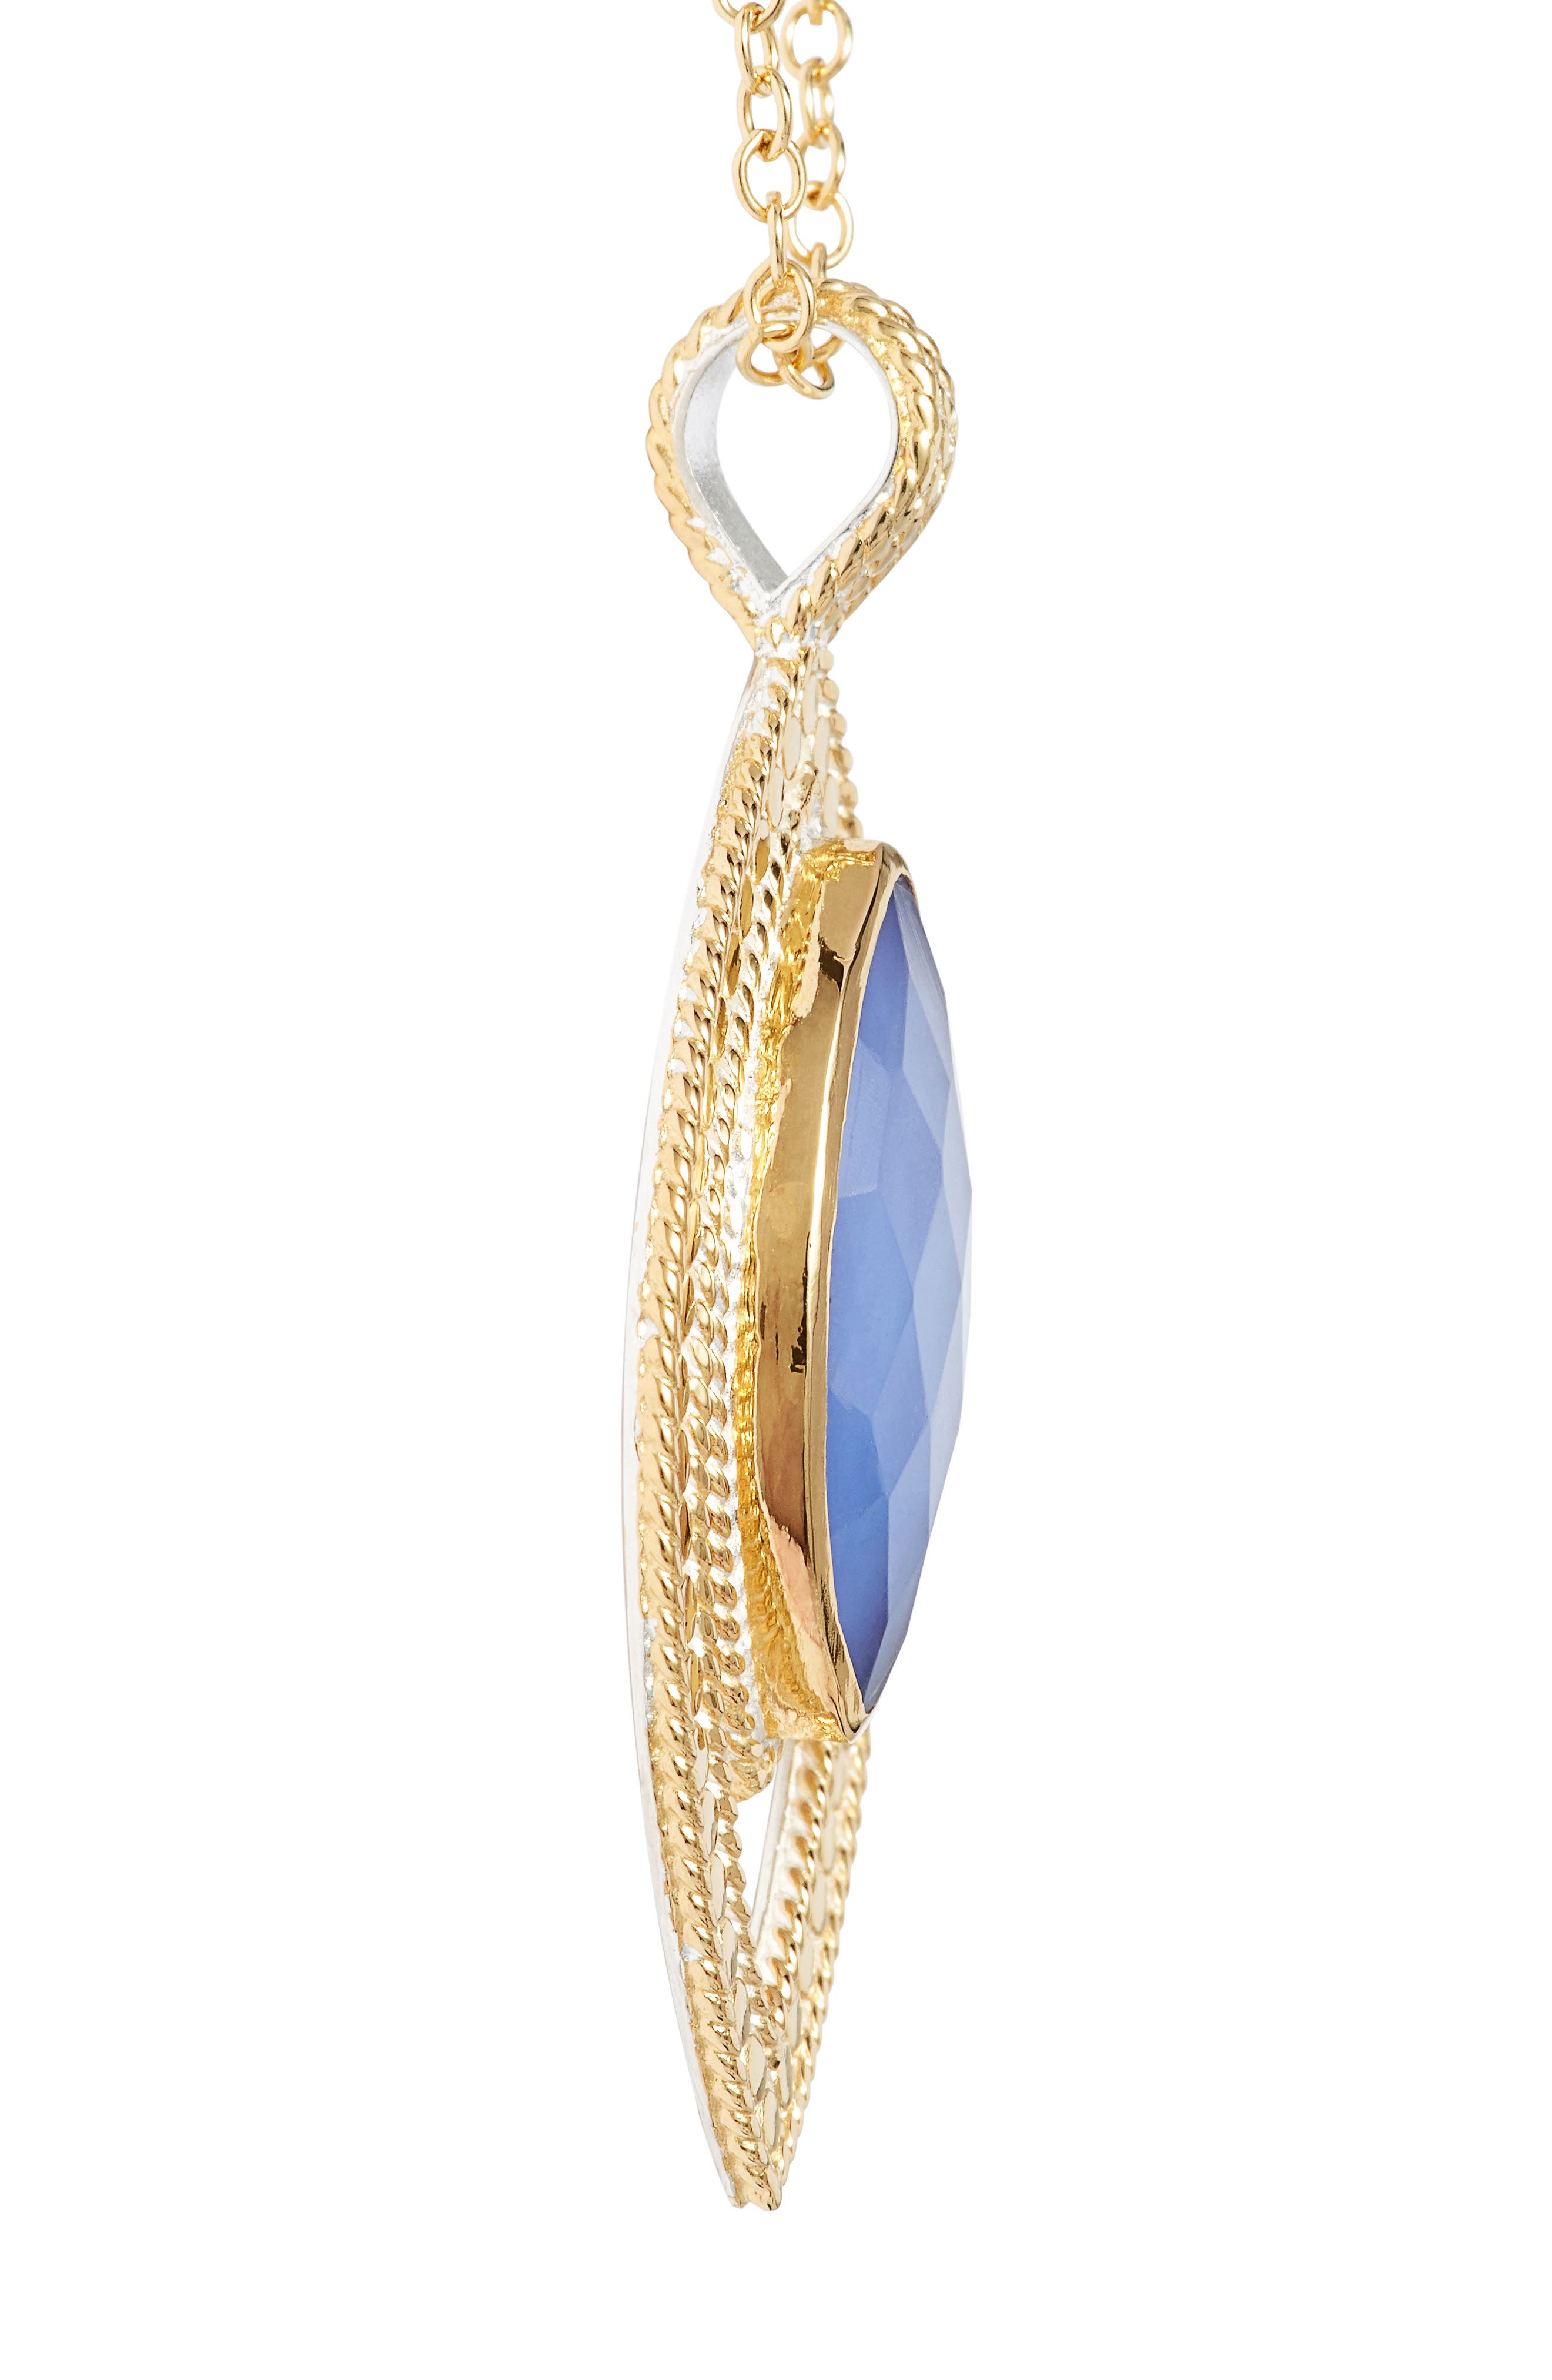 Chalcedony Doublet Pendant Necklace,                             Alternate thumbnail 3, color,                             Gold/ Blue Chalcedony